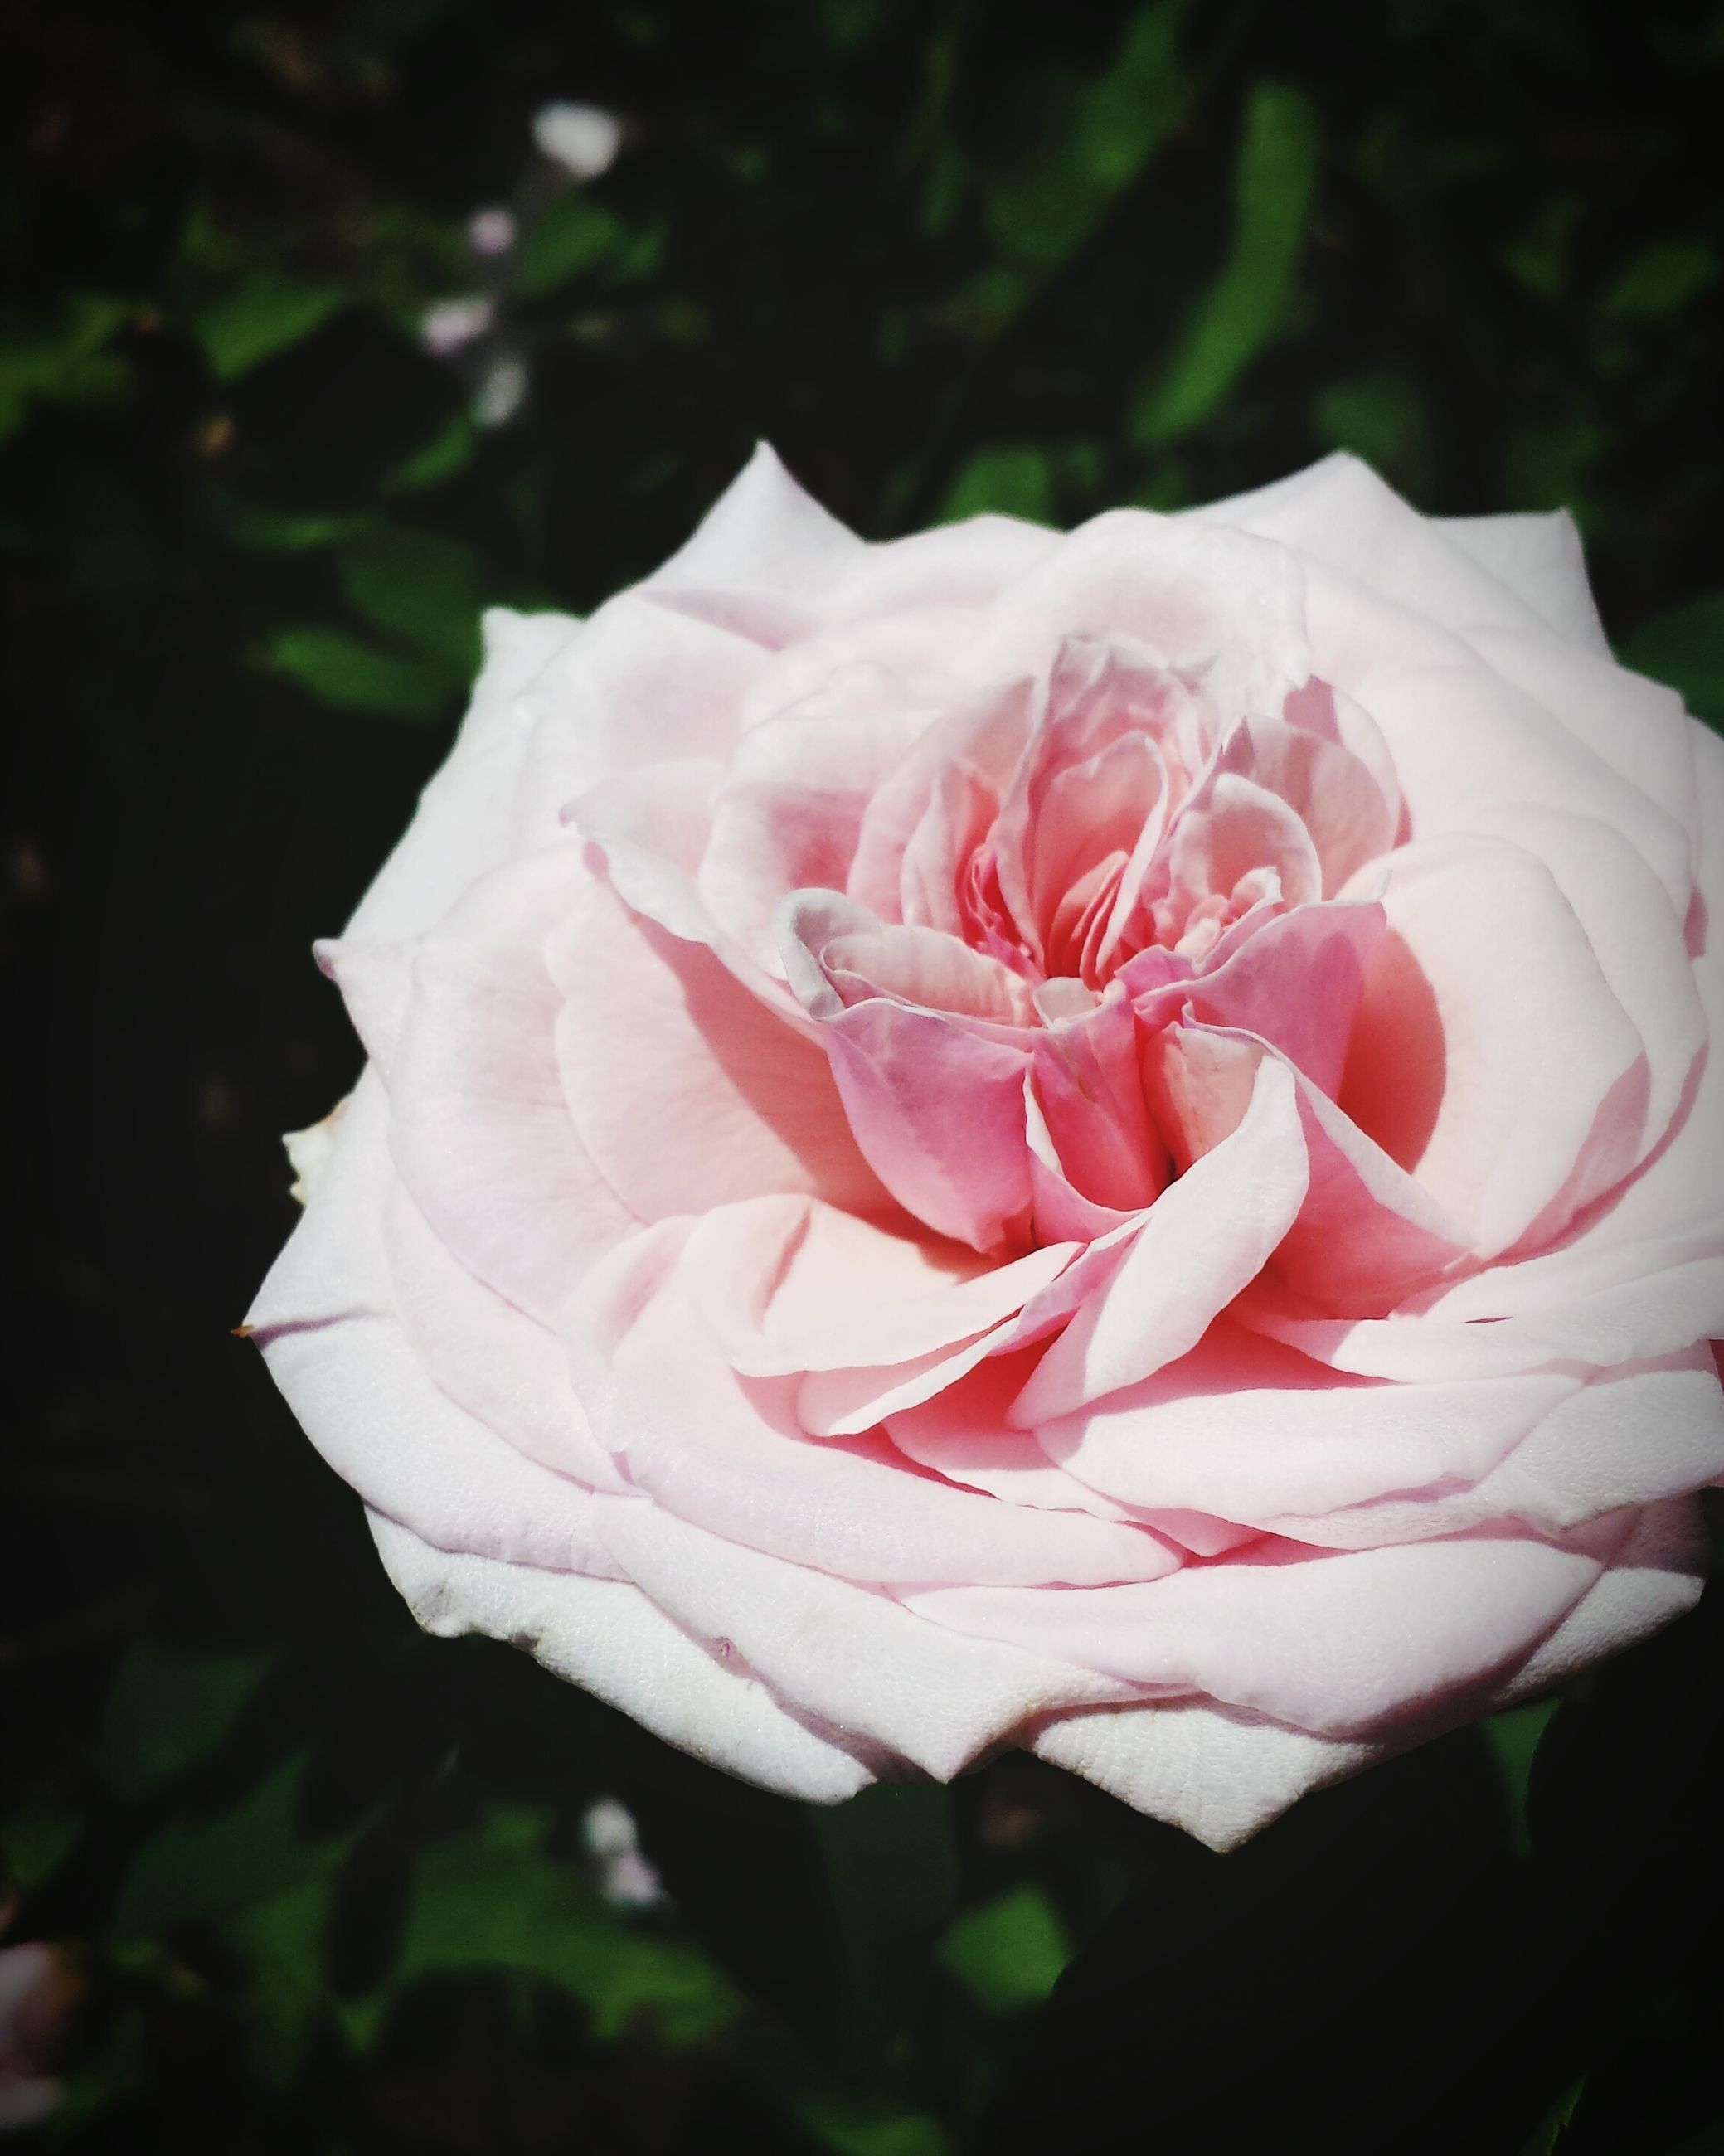 flower, petal, flower head, fragility, freshness, rose - flower, beauty in nature, single flower, close-up, growth, blooming, nature, focus on foreground, pink color, rose, in bloom, single rose, white color, plant, blossom